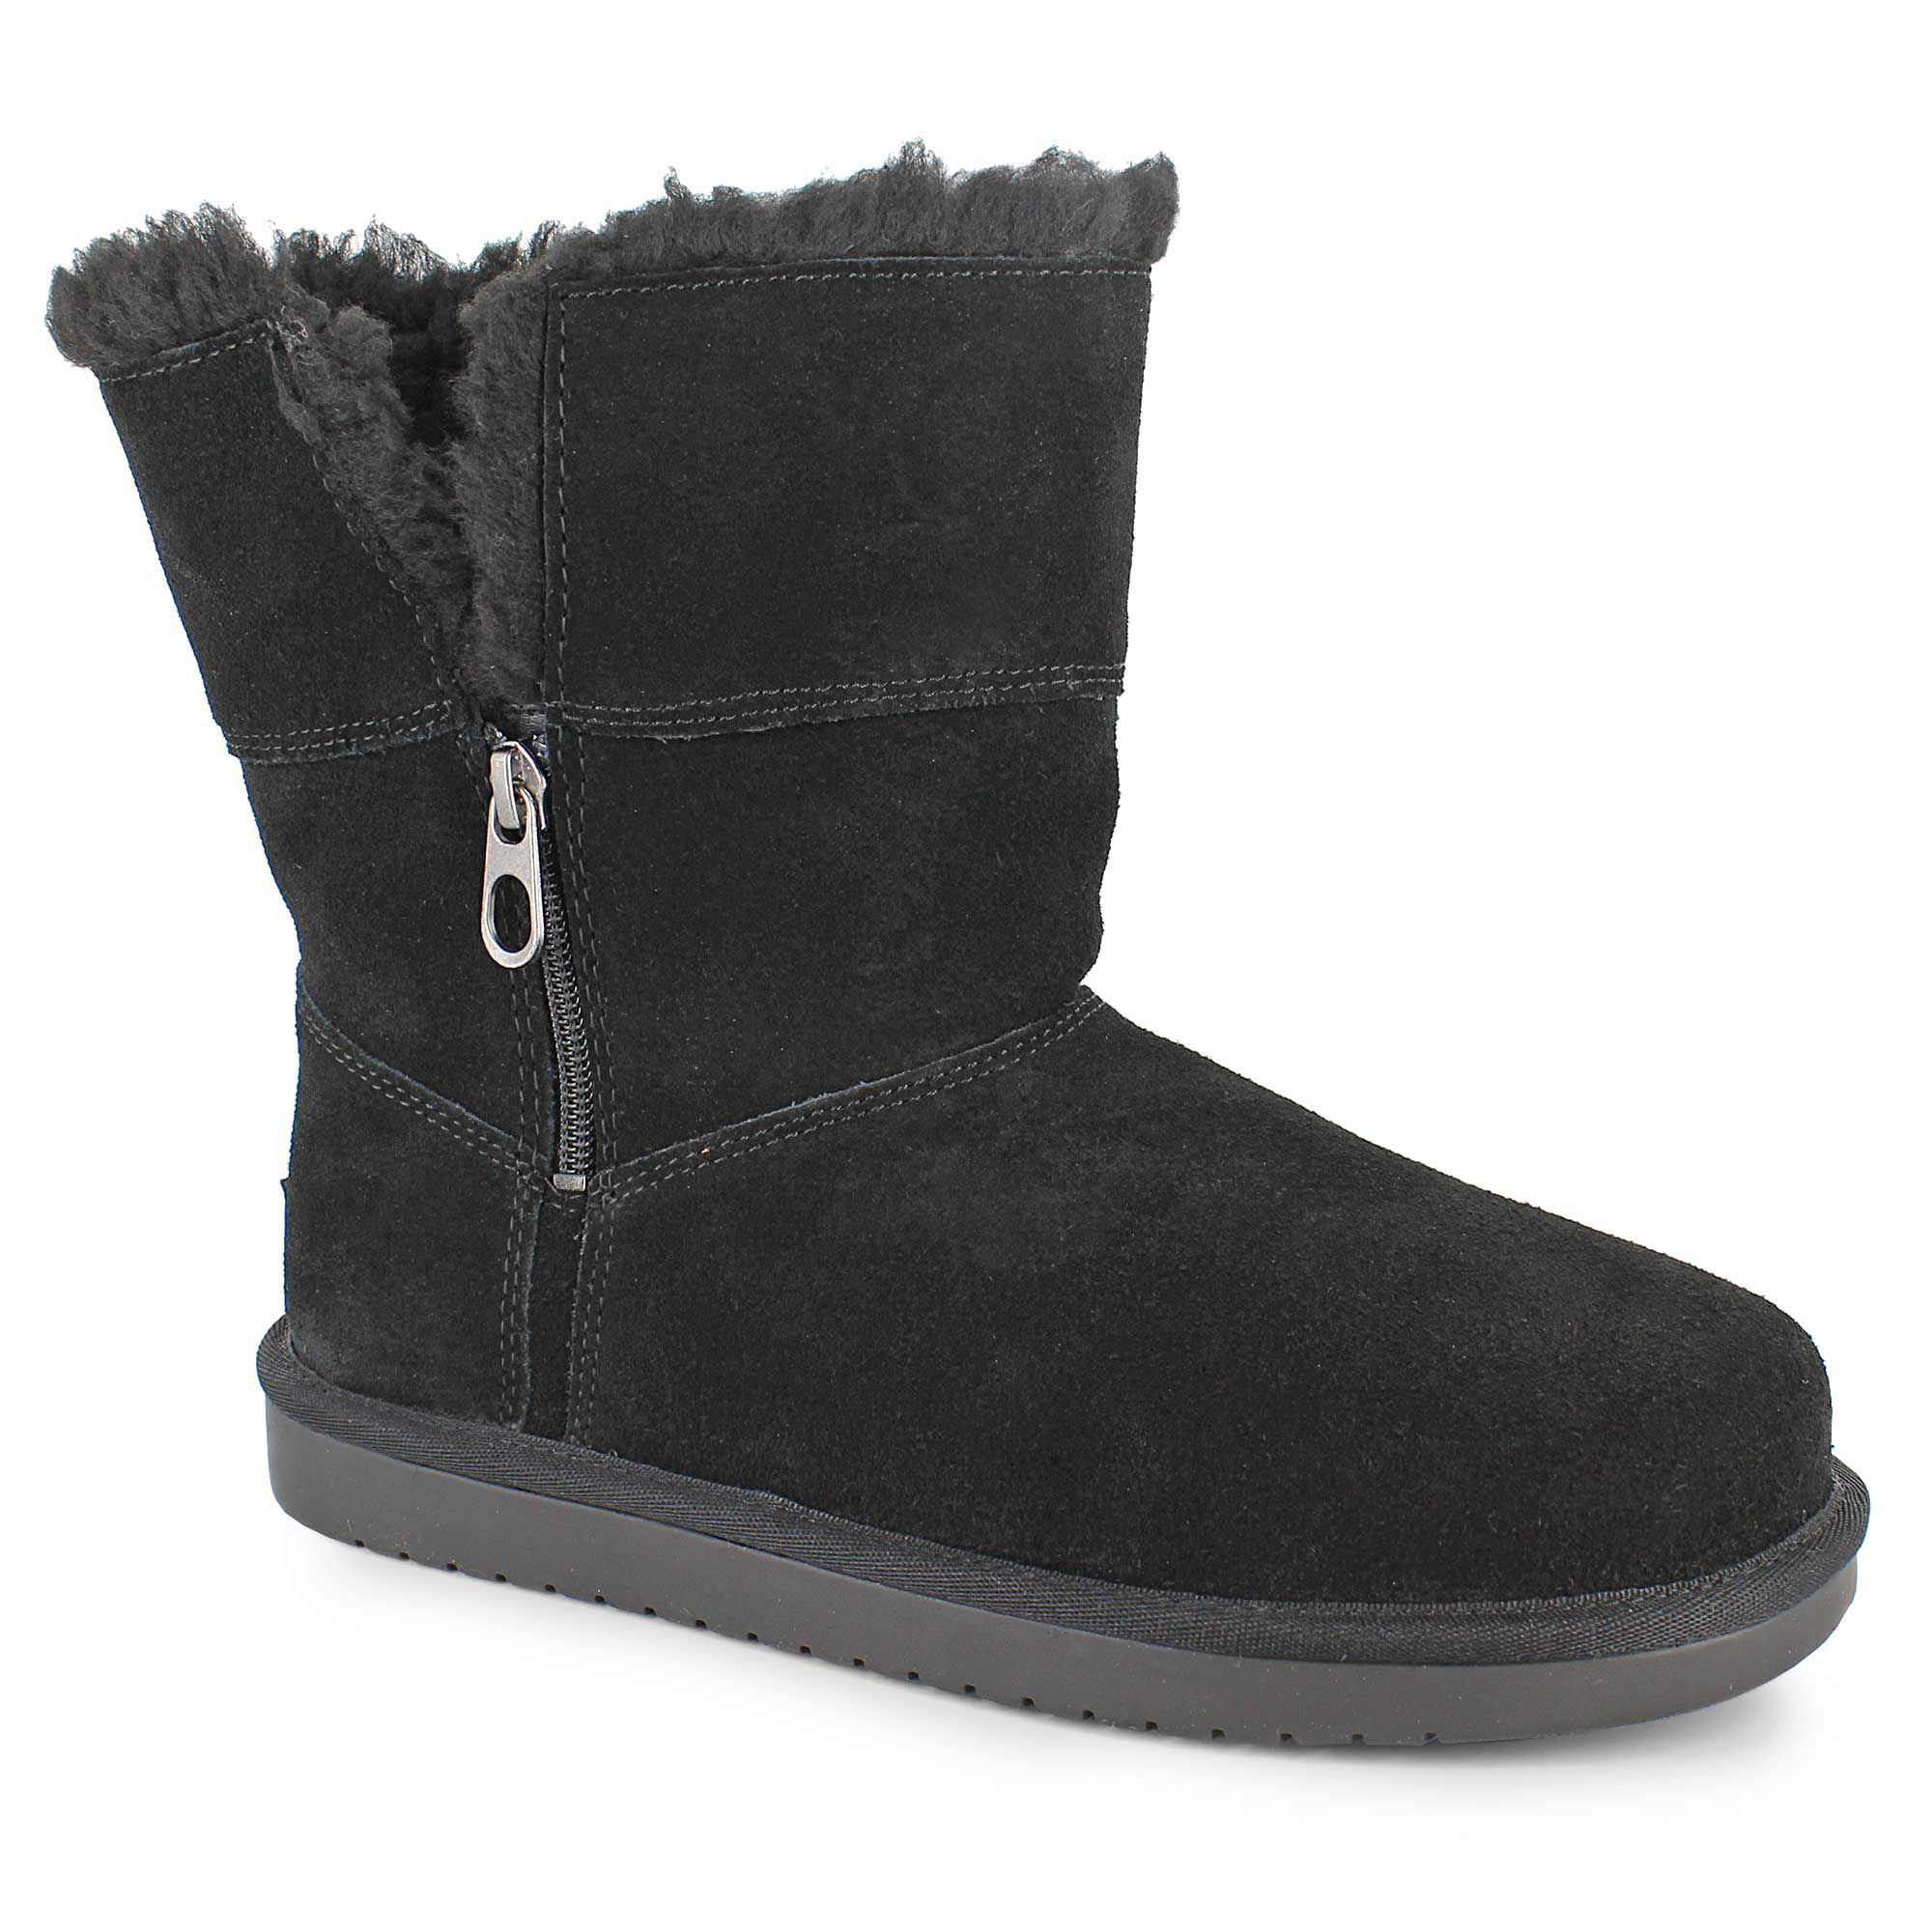 Girls' Boots   Shop Now at SHOE DEPT